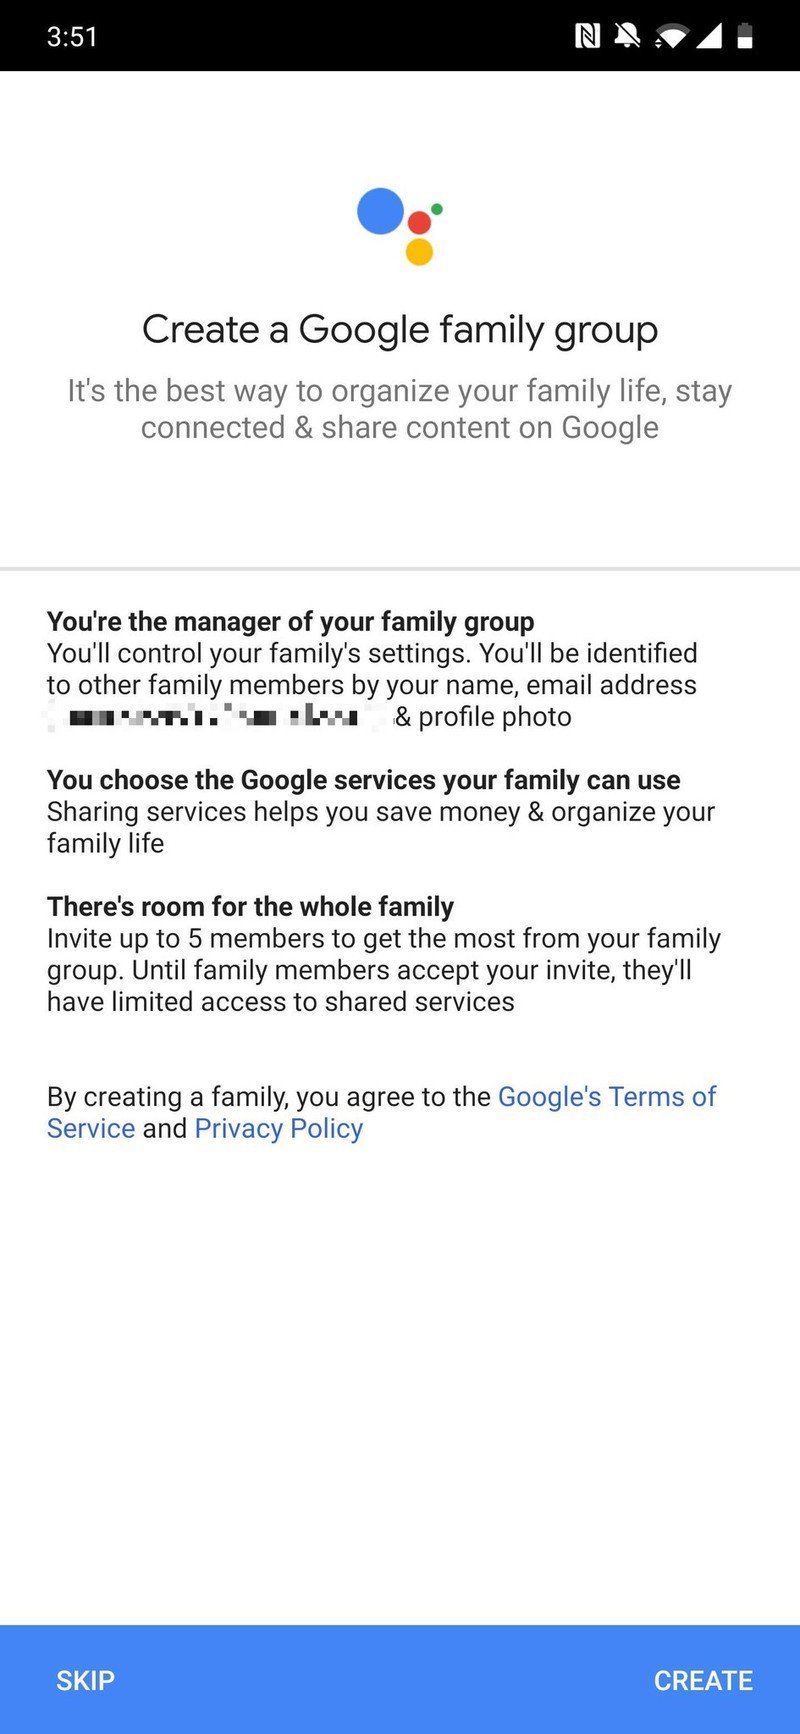 how-to-create-google-family-group-6.jpg?